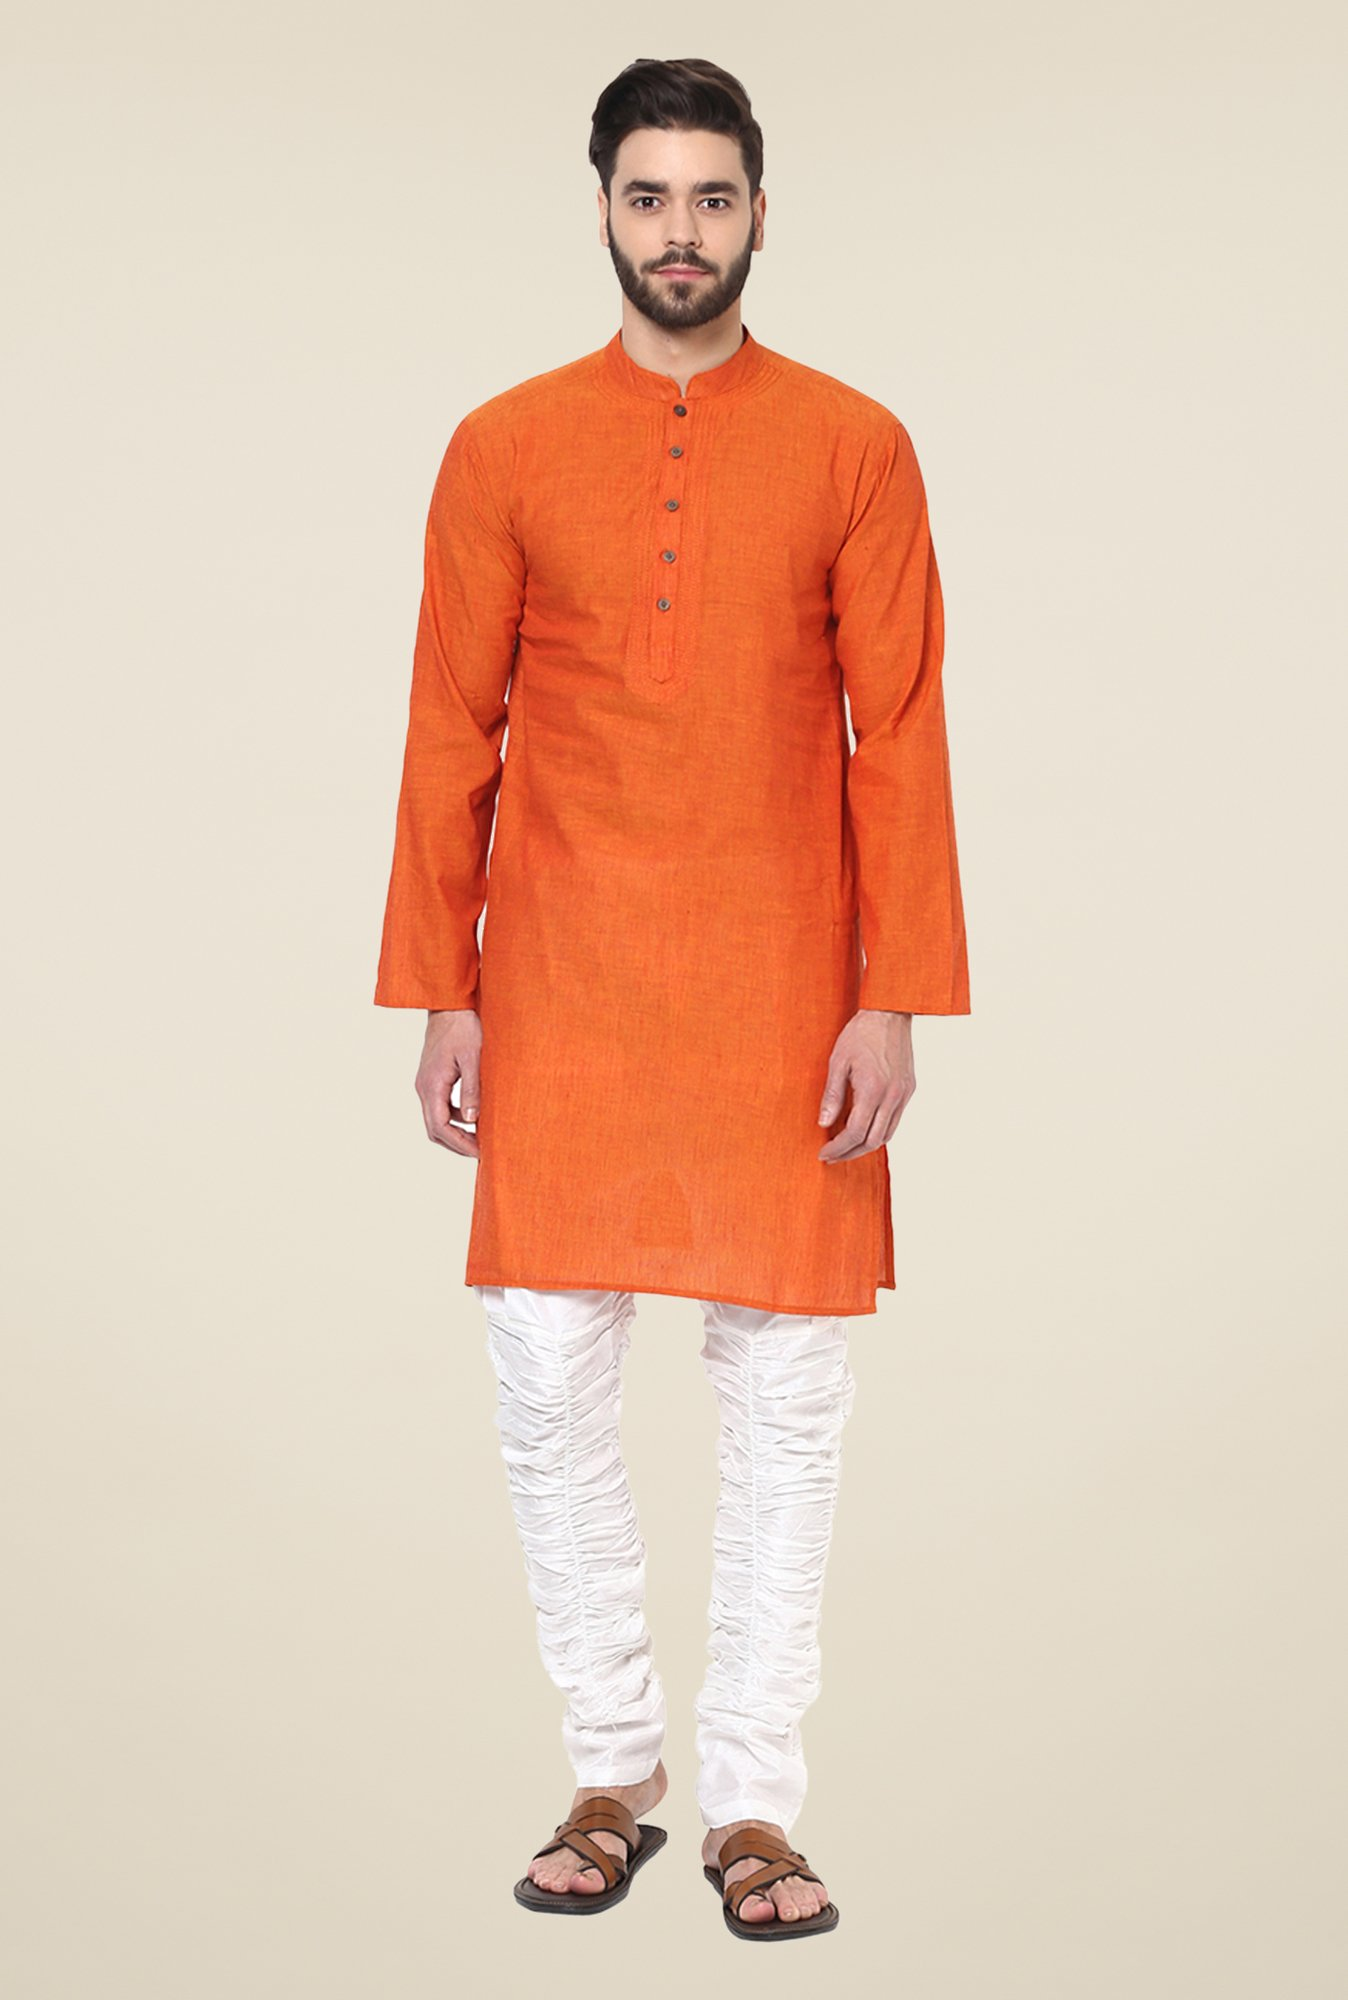 Yepme Kance Orange Solid Kurta